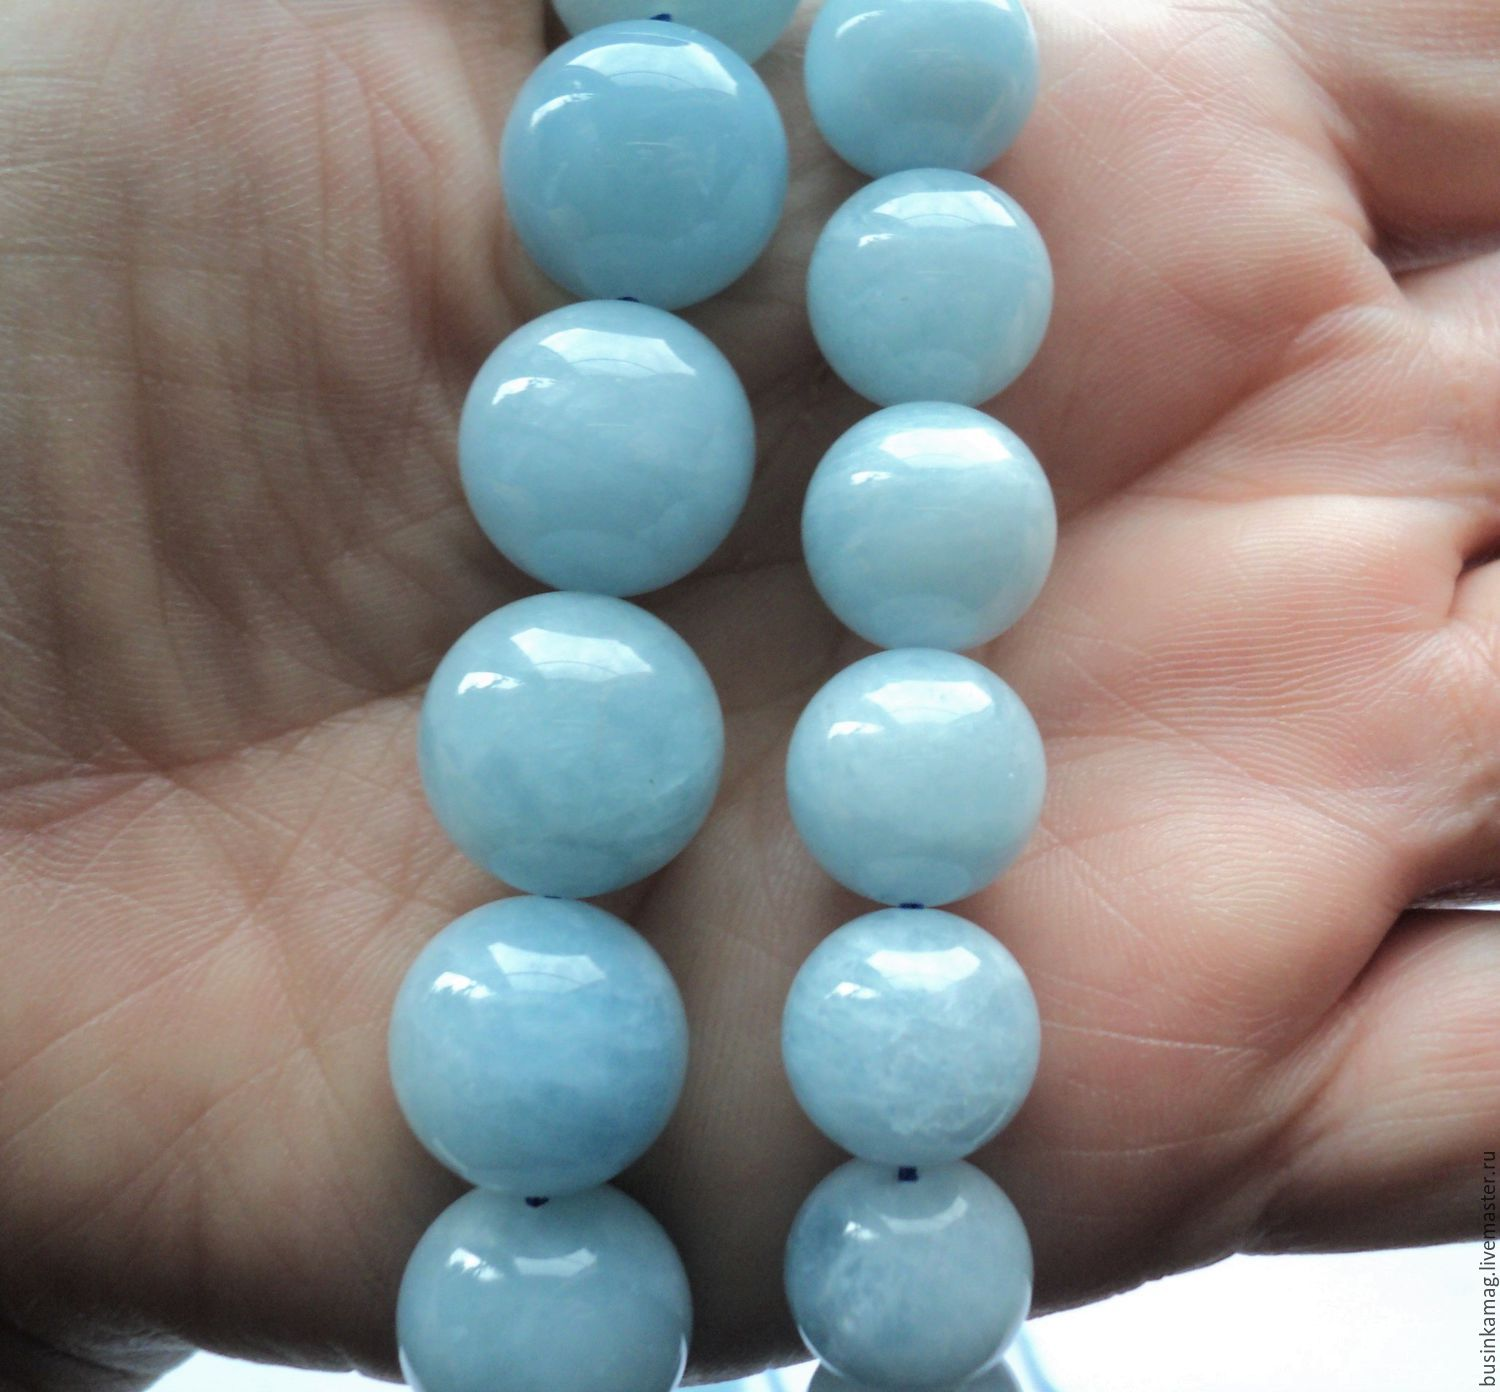 buy jade round the rectangular store online bracelet rectangle beads jewelry pic to welcome